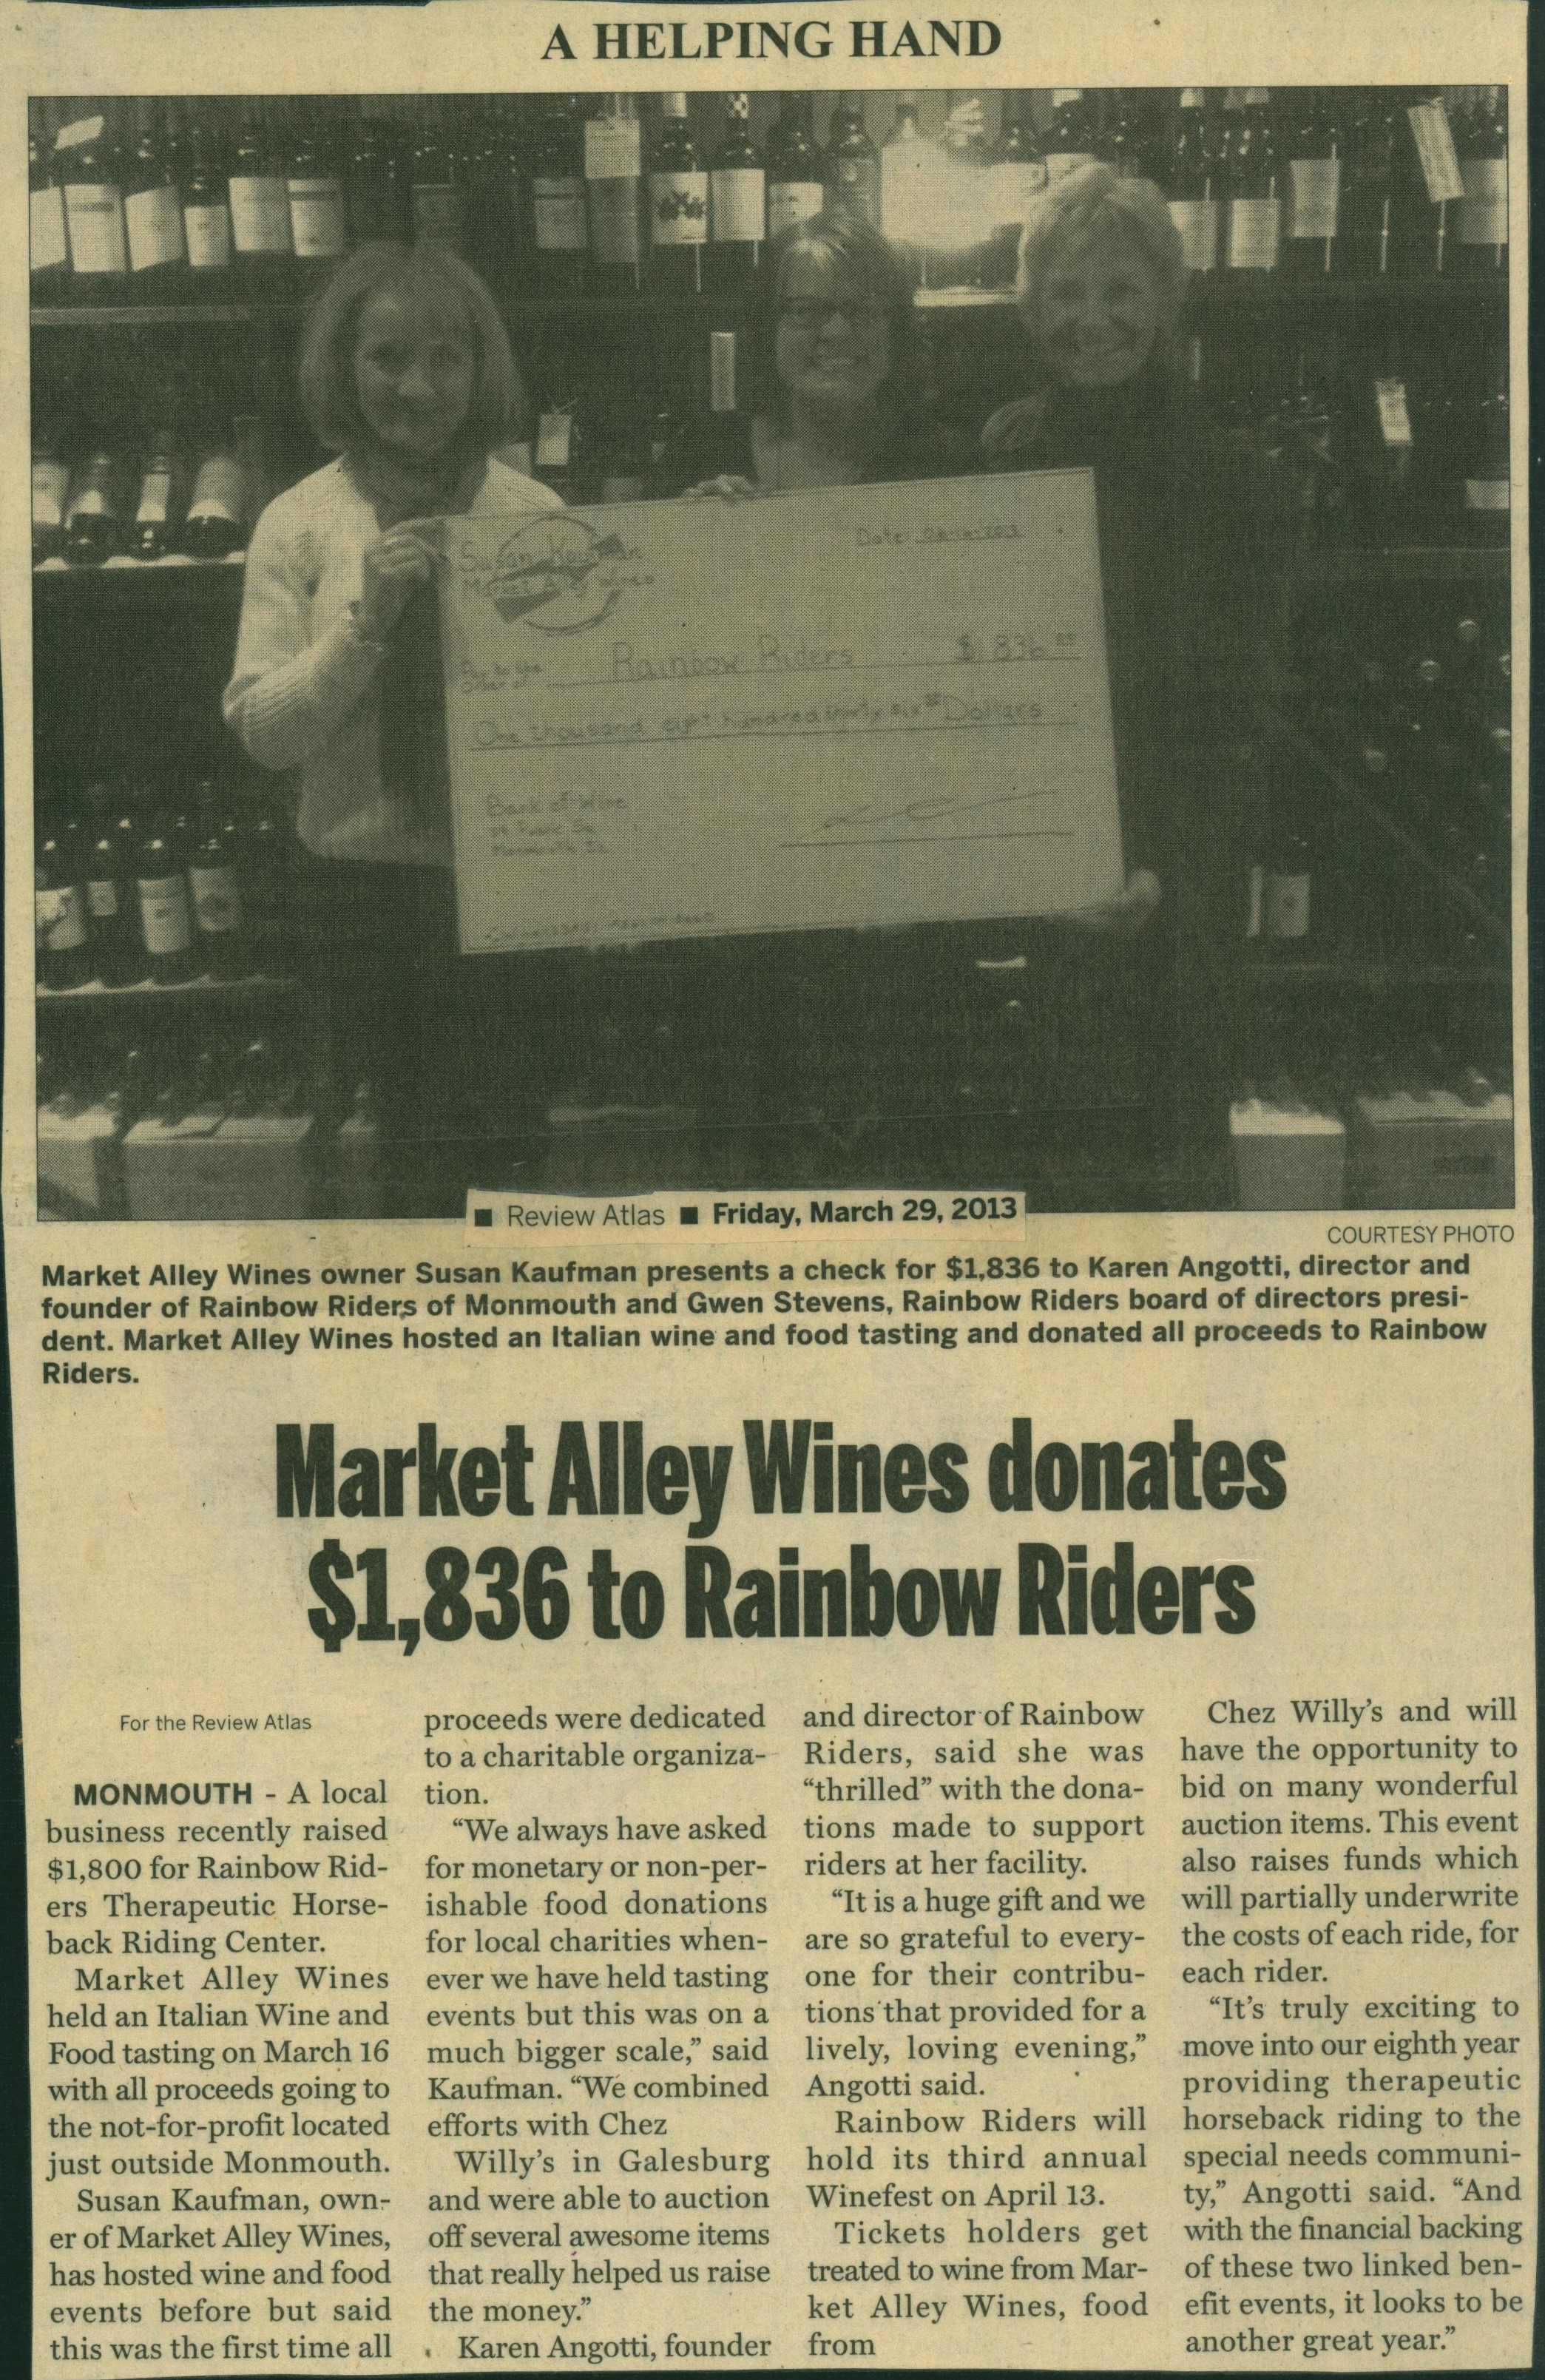 Market Alley Wines Donates